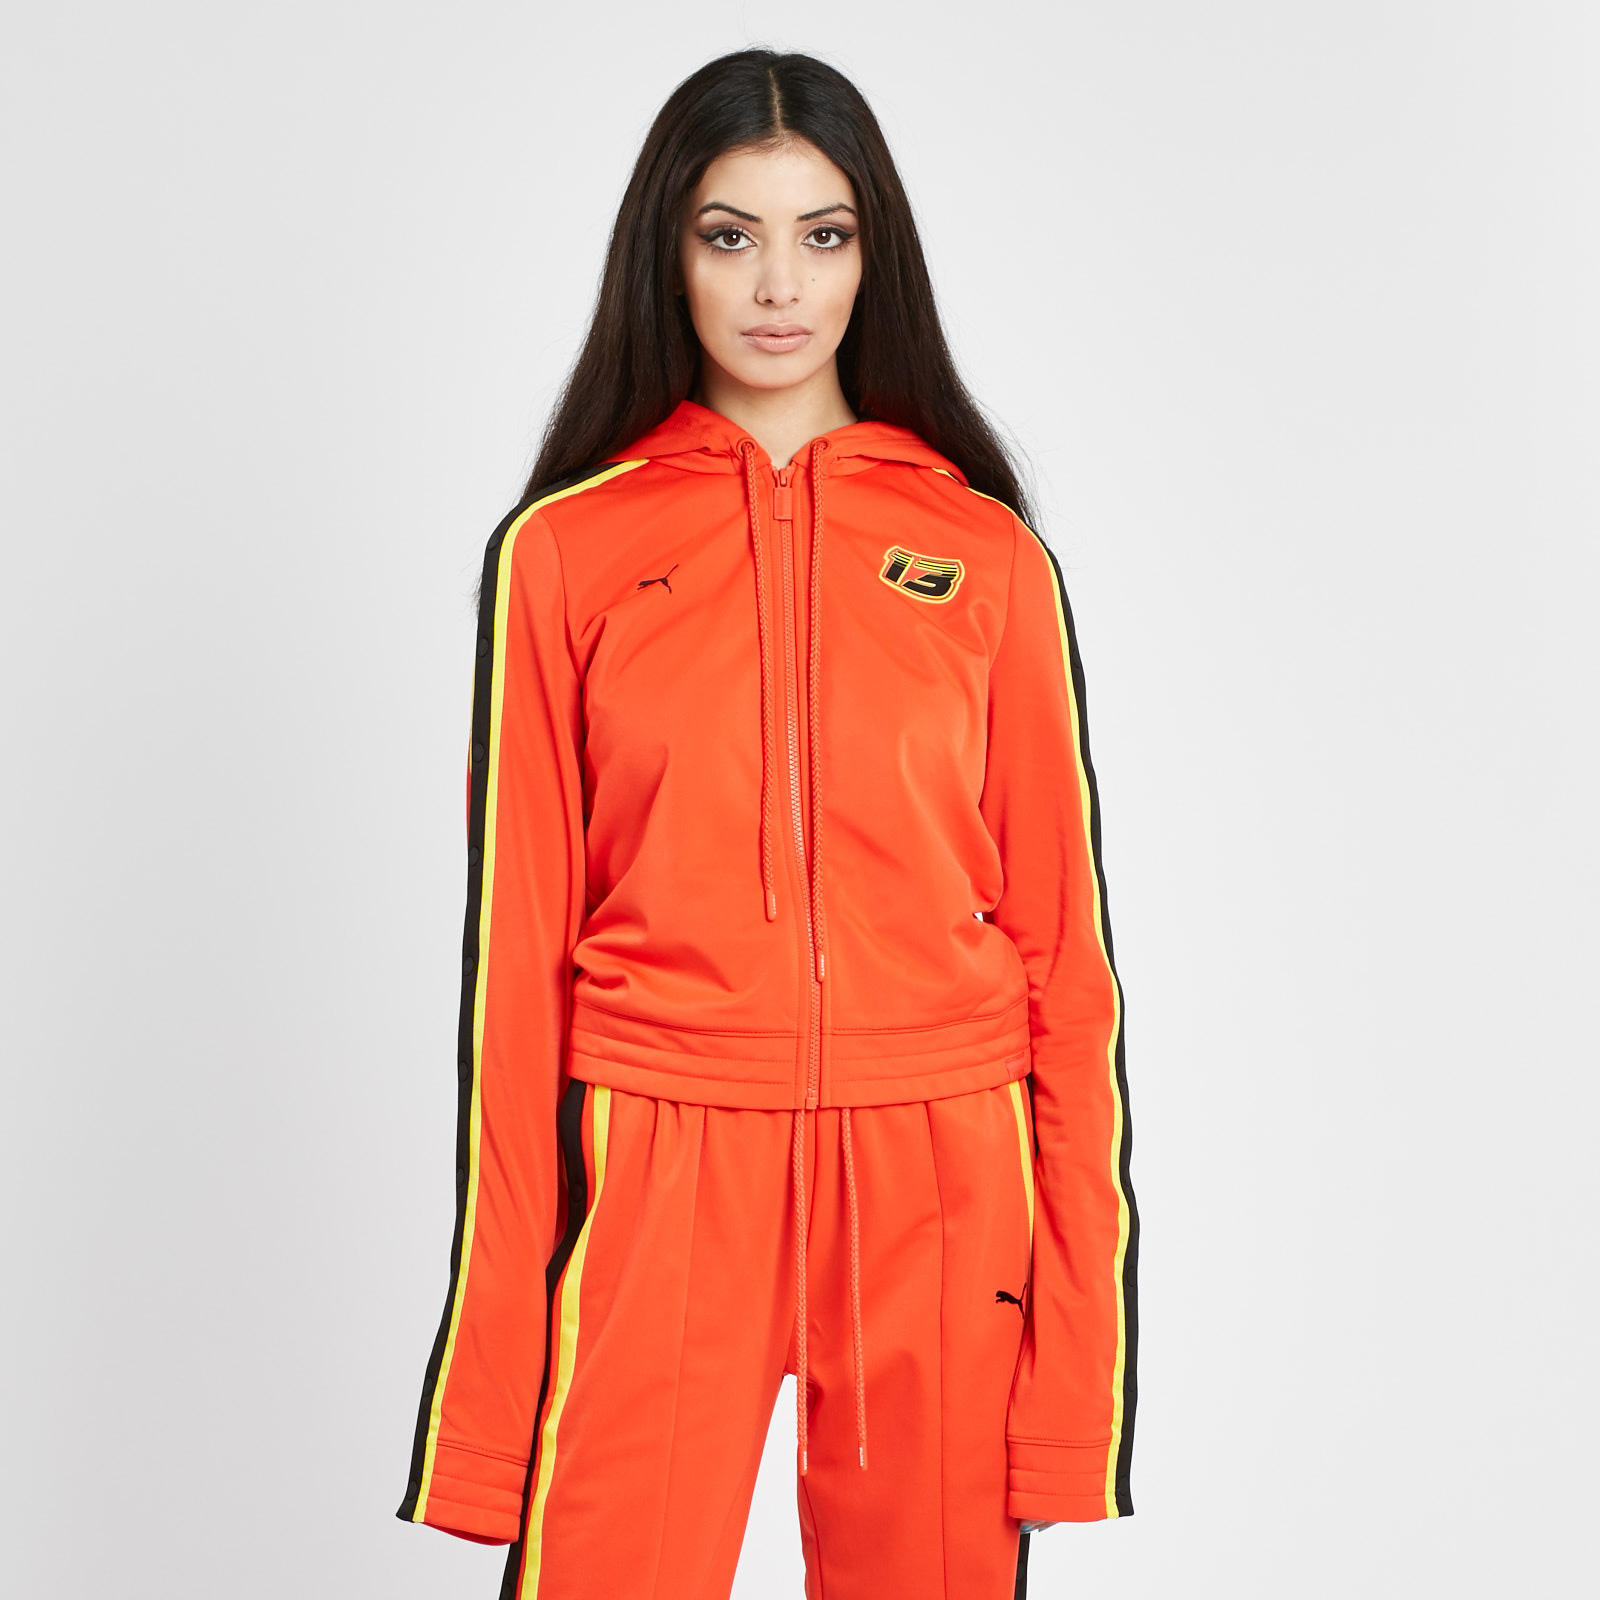 Fitted Tearaway track jacket - Red Fenty Puma by Rihanna Discount New Styles With Mastercard Online Cheap Sale Popular Shopping Online Cheap Price Free Shipping Professional kWUf1gDtZV